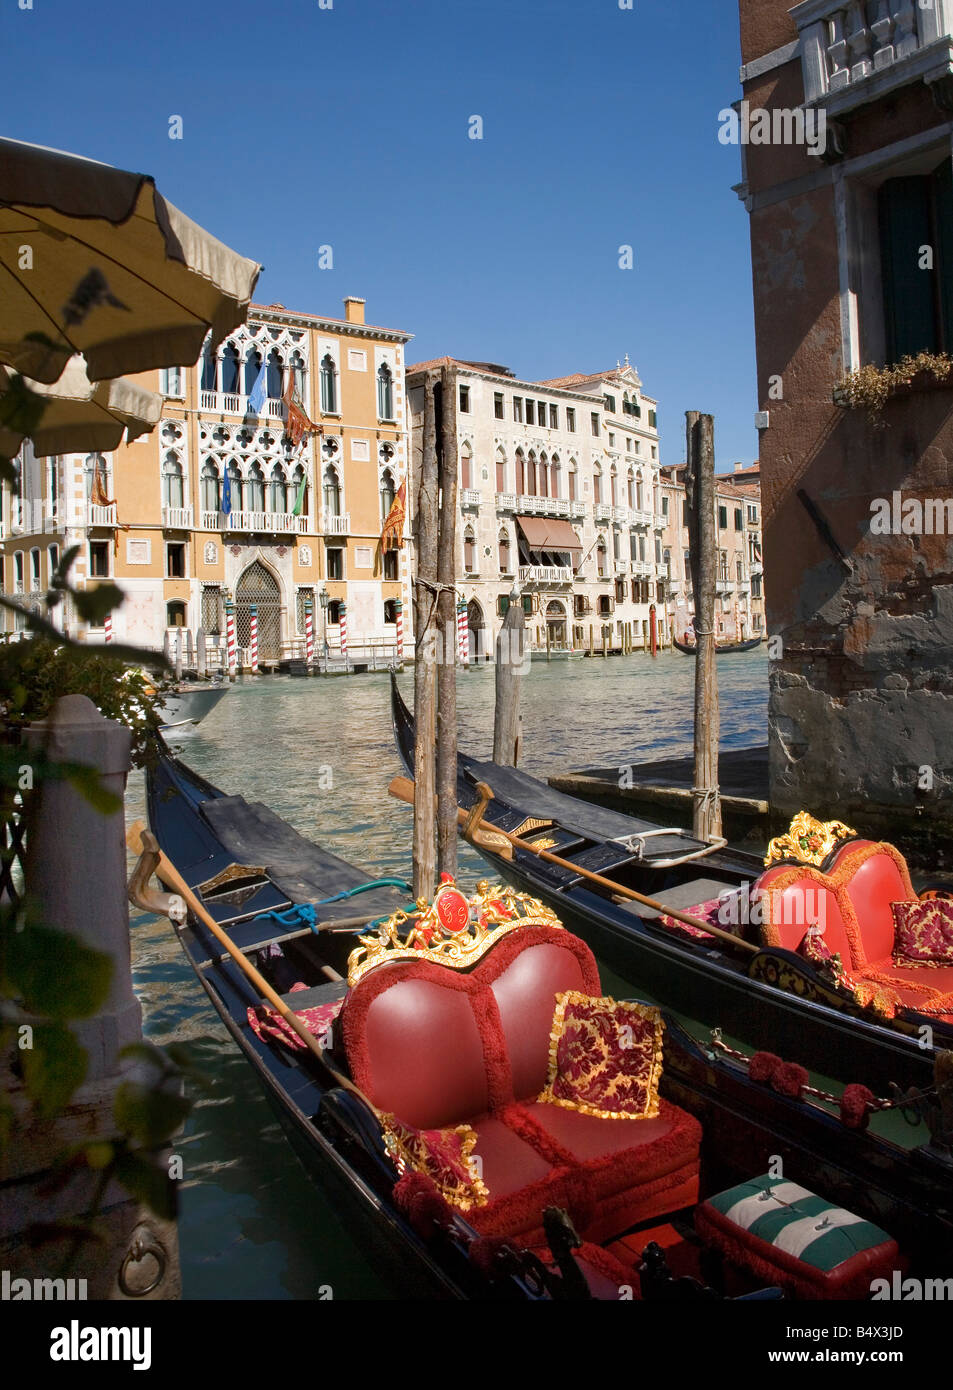 Gondolas moored on the Grand Canal in Venice - Stock Image